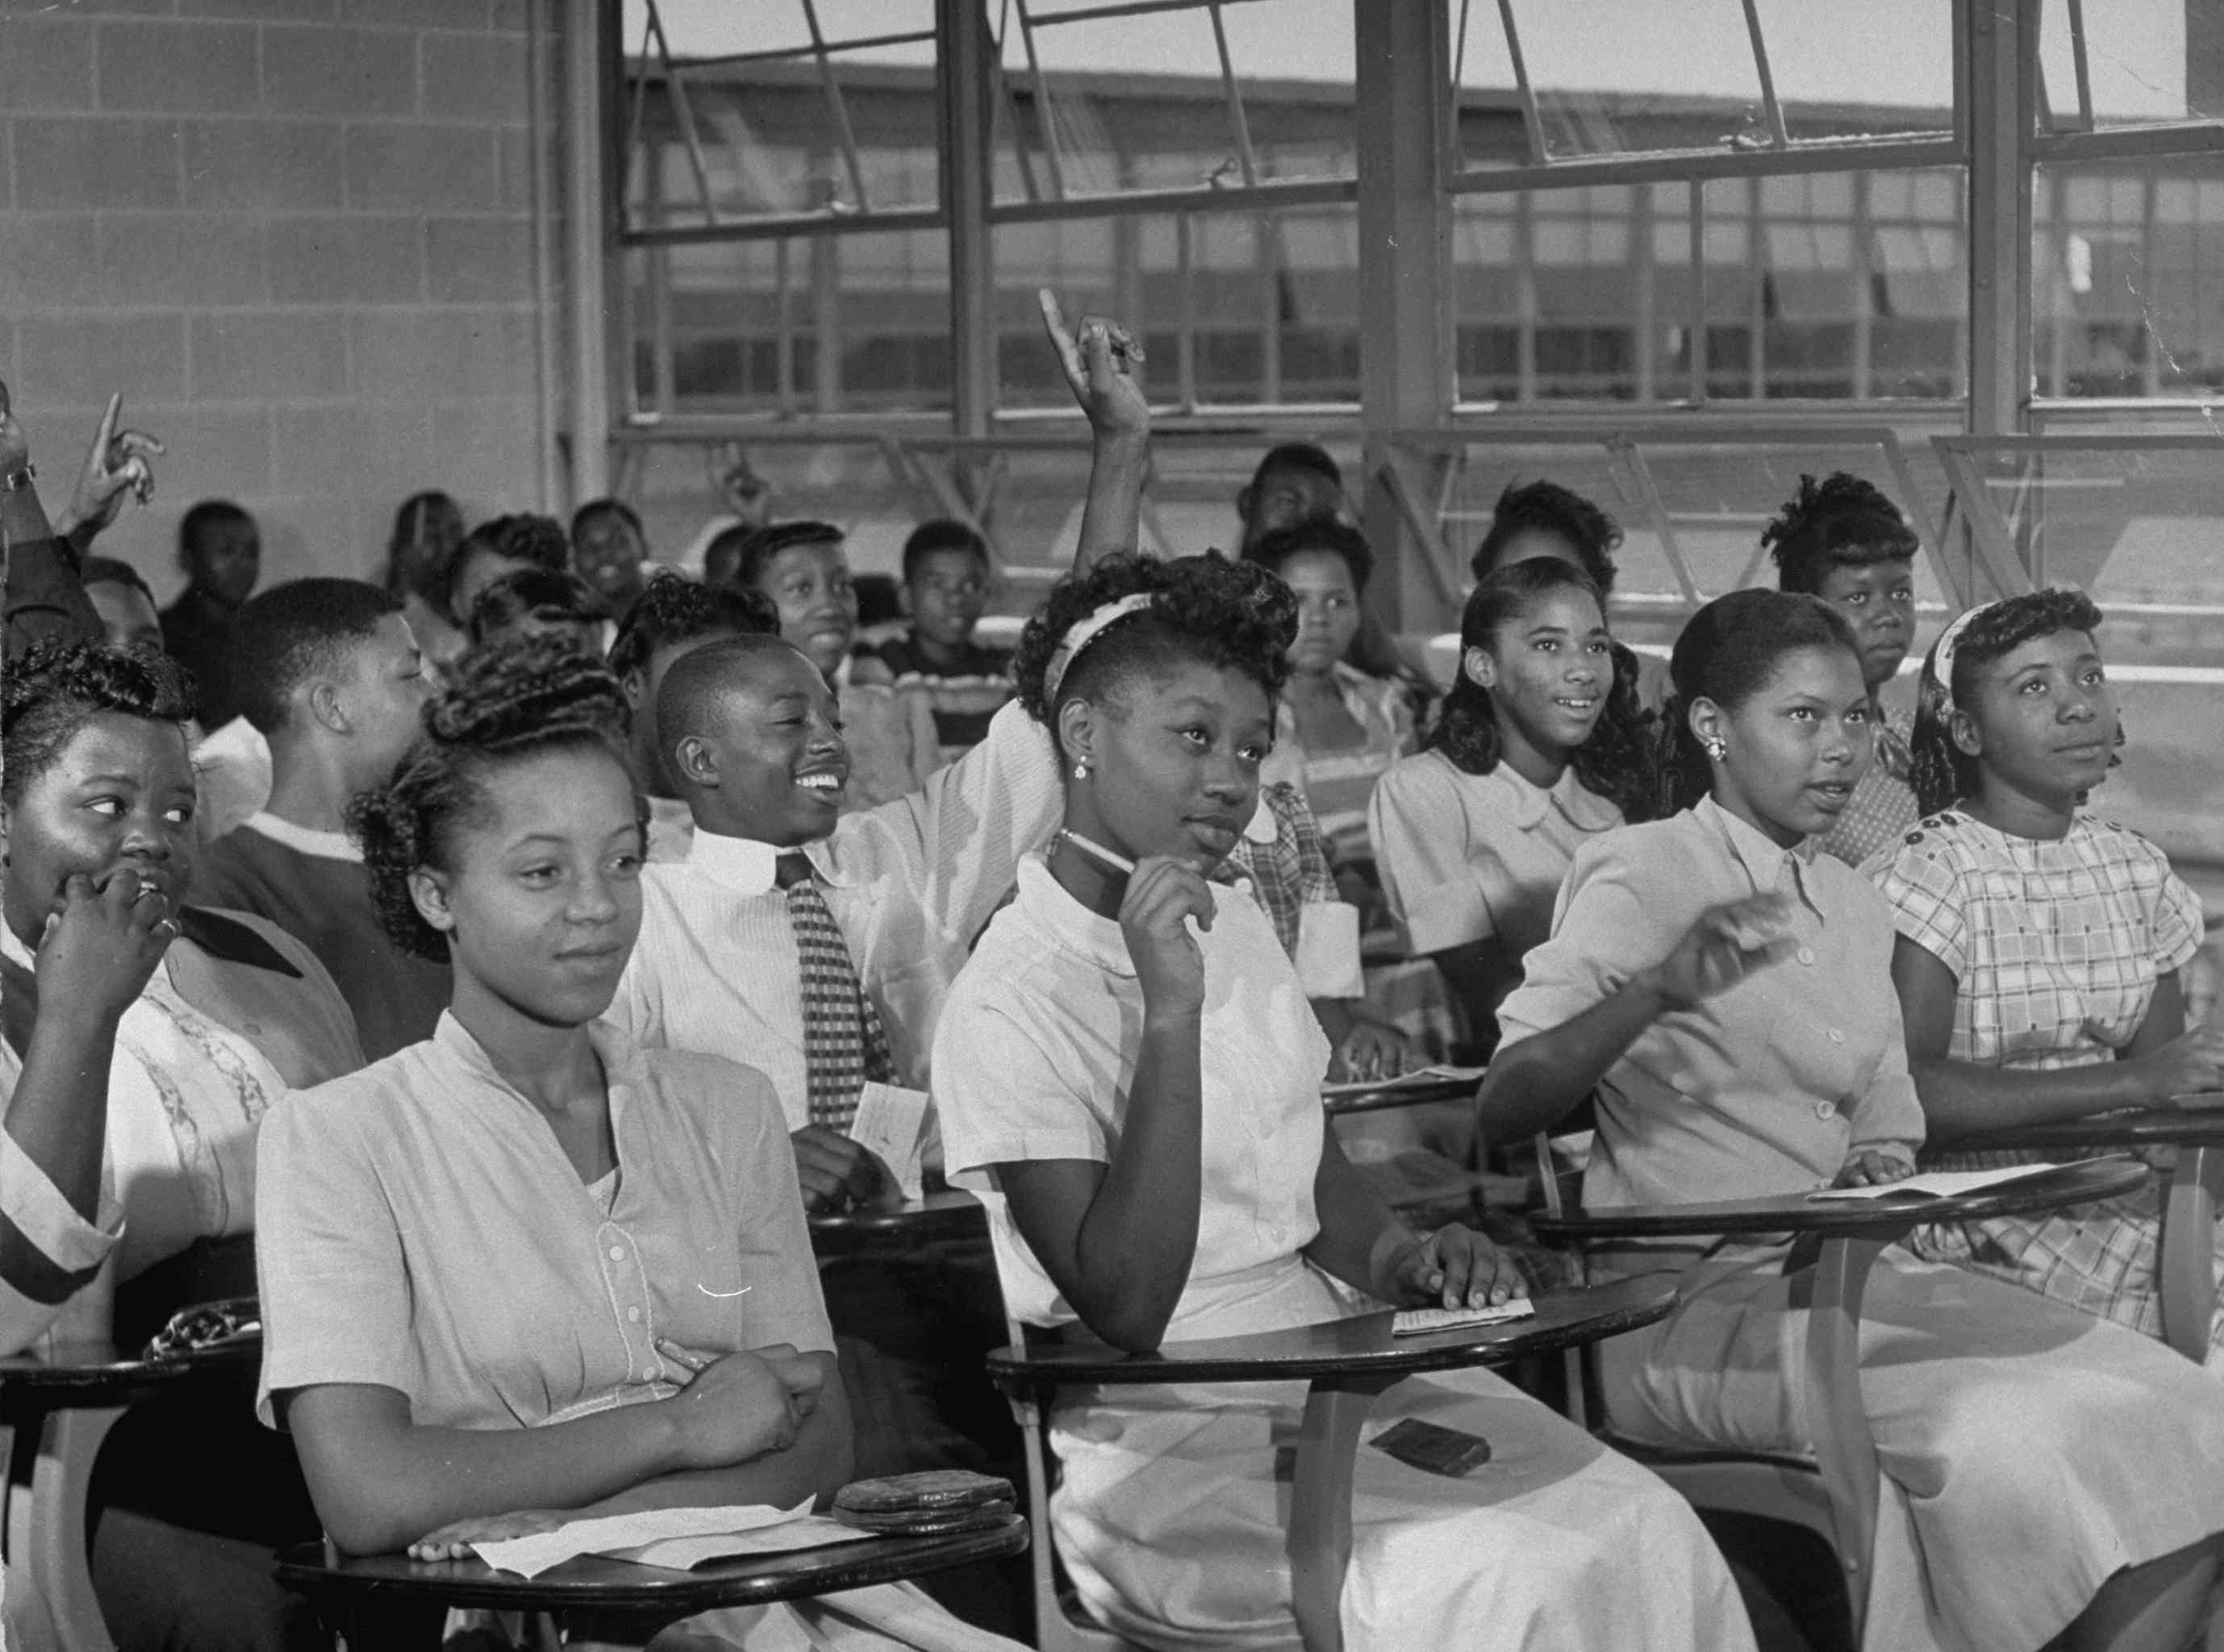 September 1949 African-American students in class at brand new George Washington Carver High School, Alabama